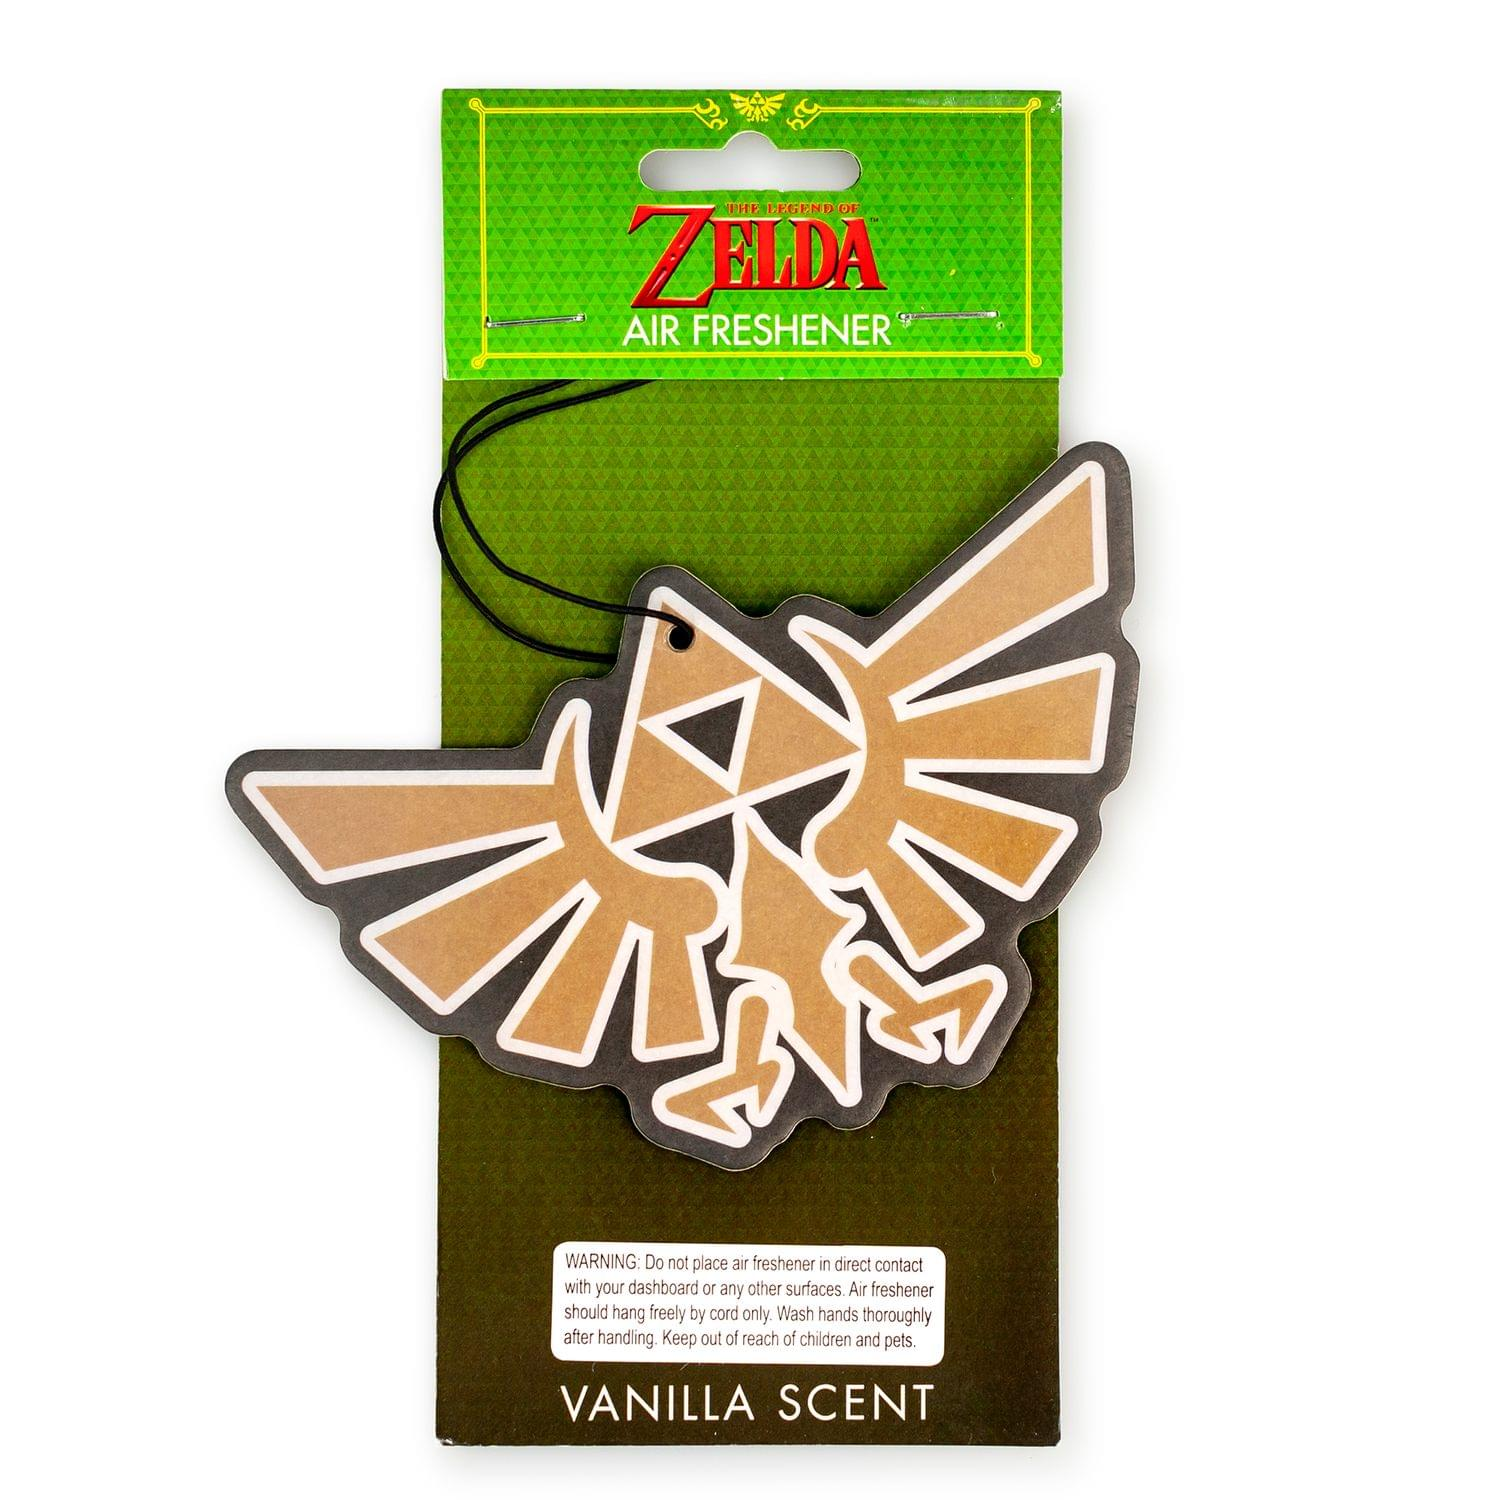 The Legend of Zelda Hyrule Air Freshener | Nintendo Game Collectible